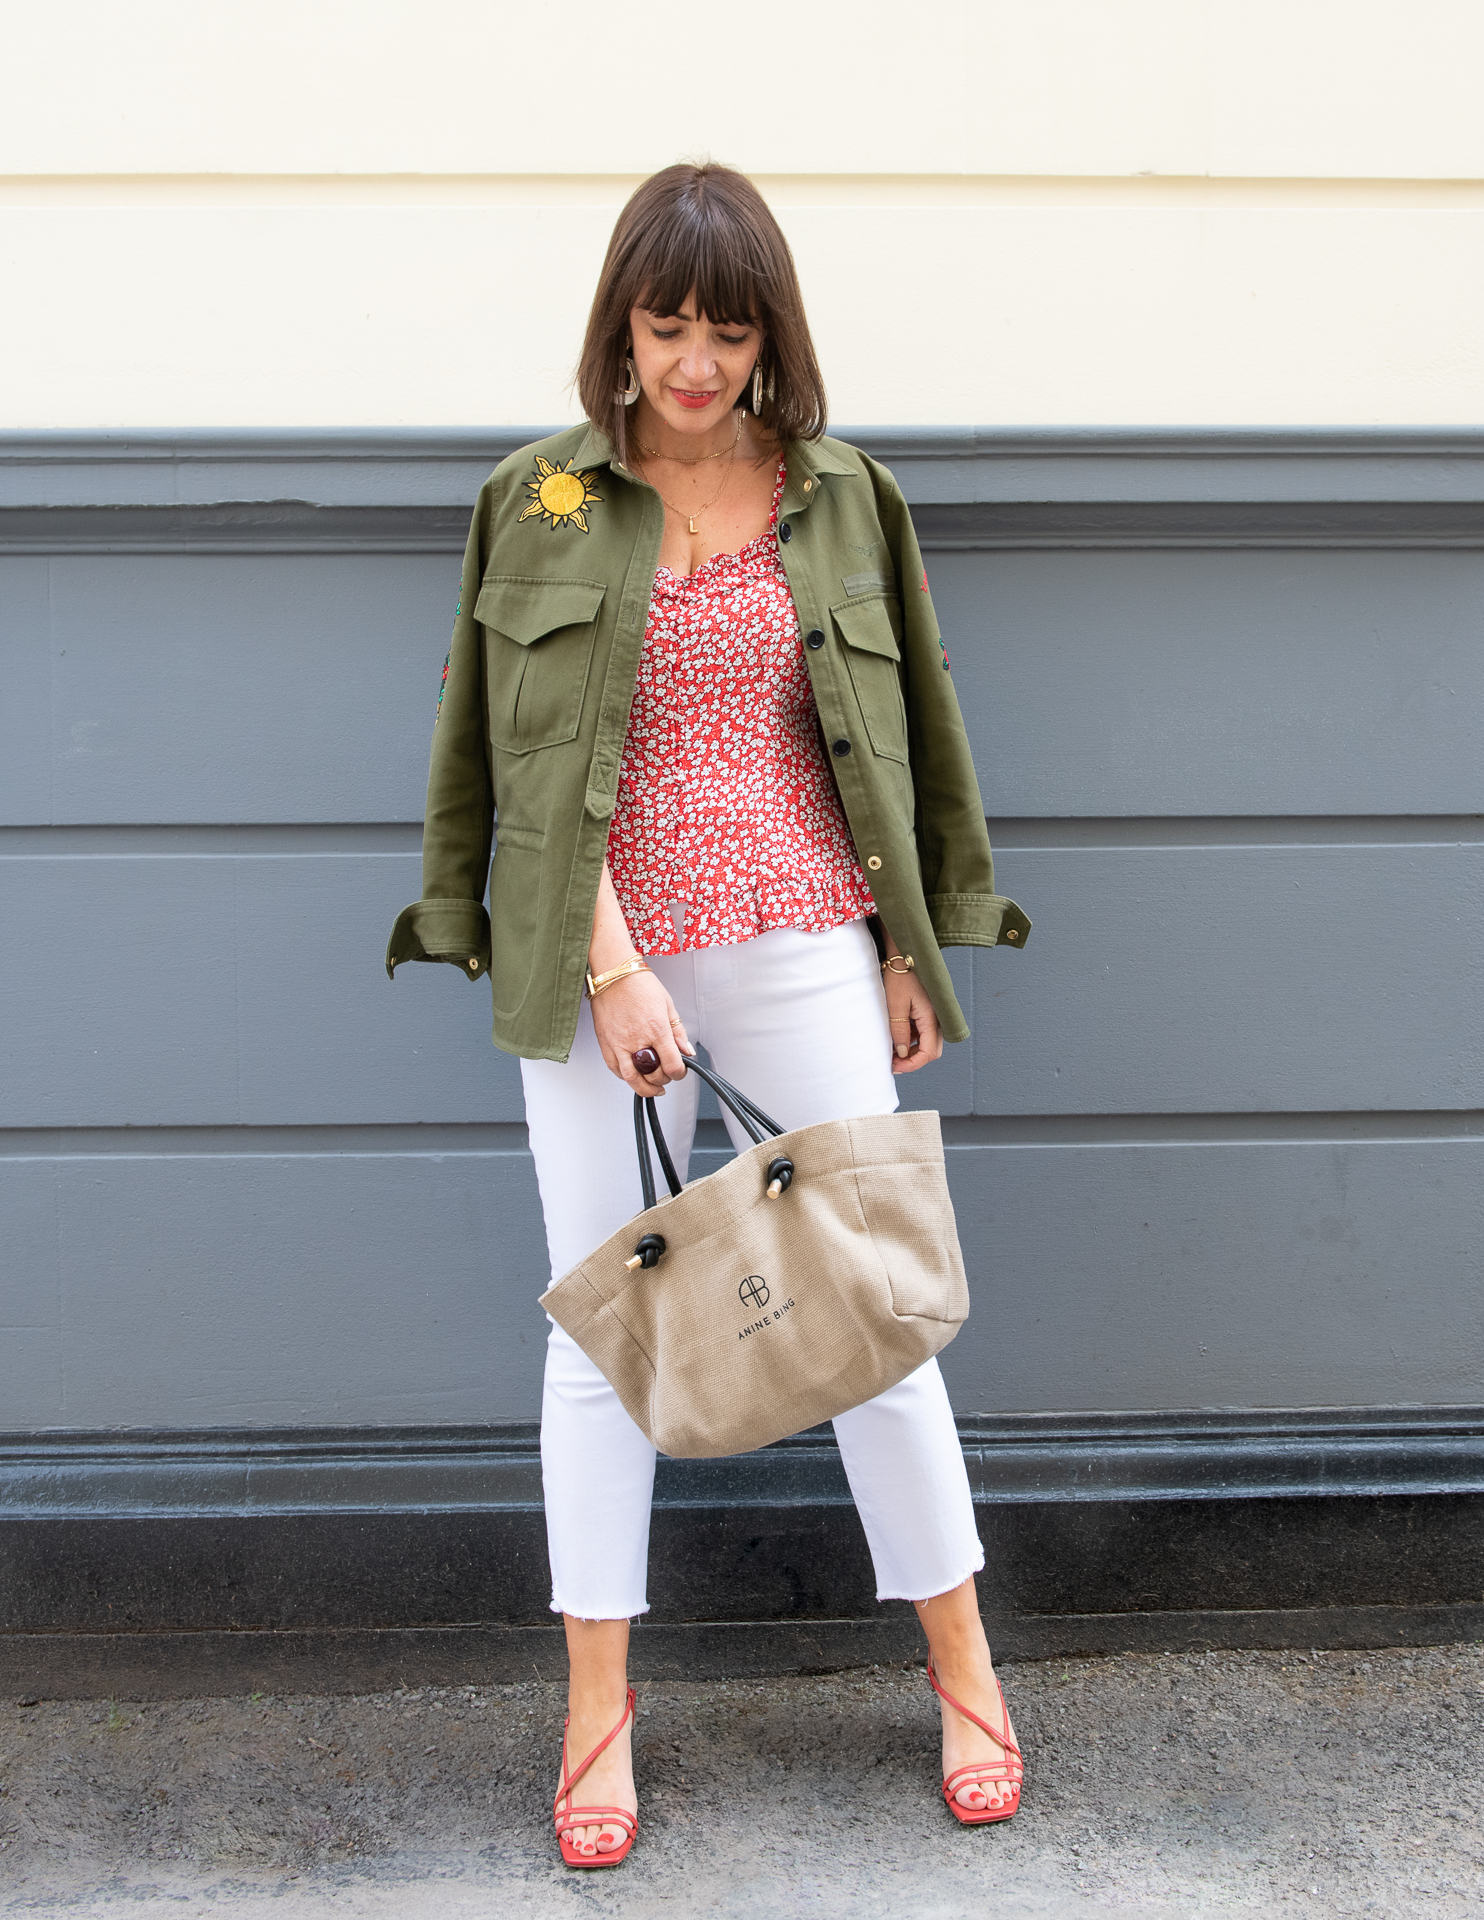 TRANSITION YOUR SUMMER WHITES WITH THE AUTUMN TREND OF KHAKI, HERE'S HOW